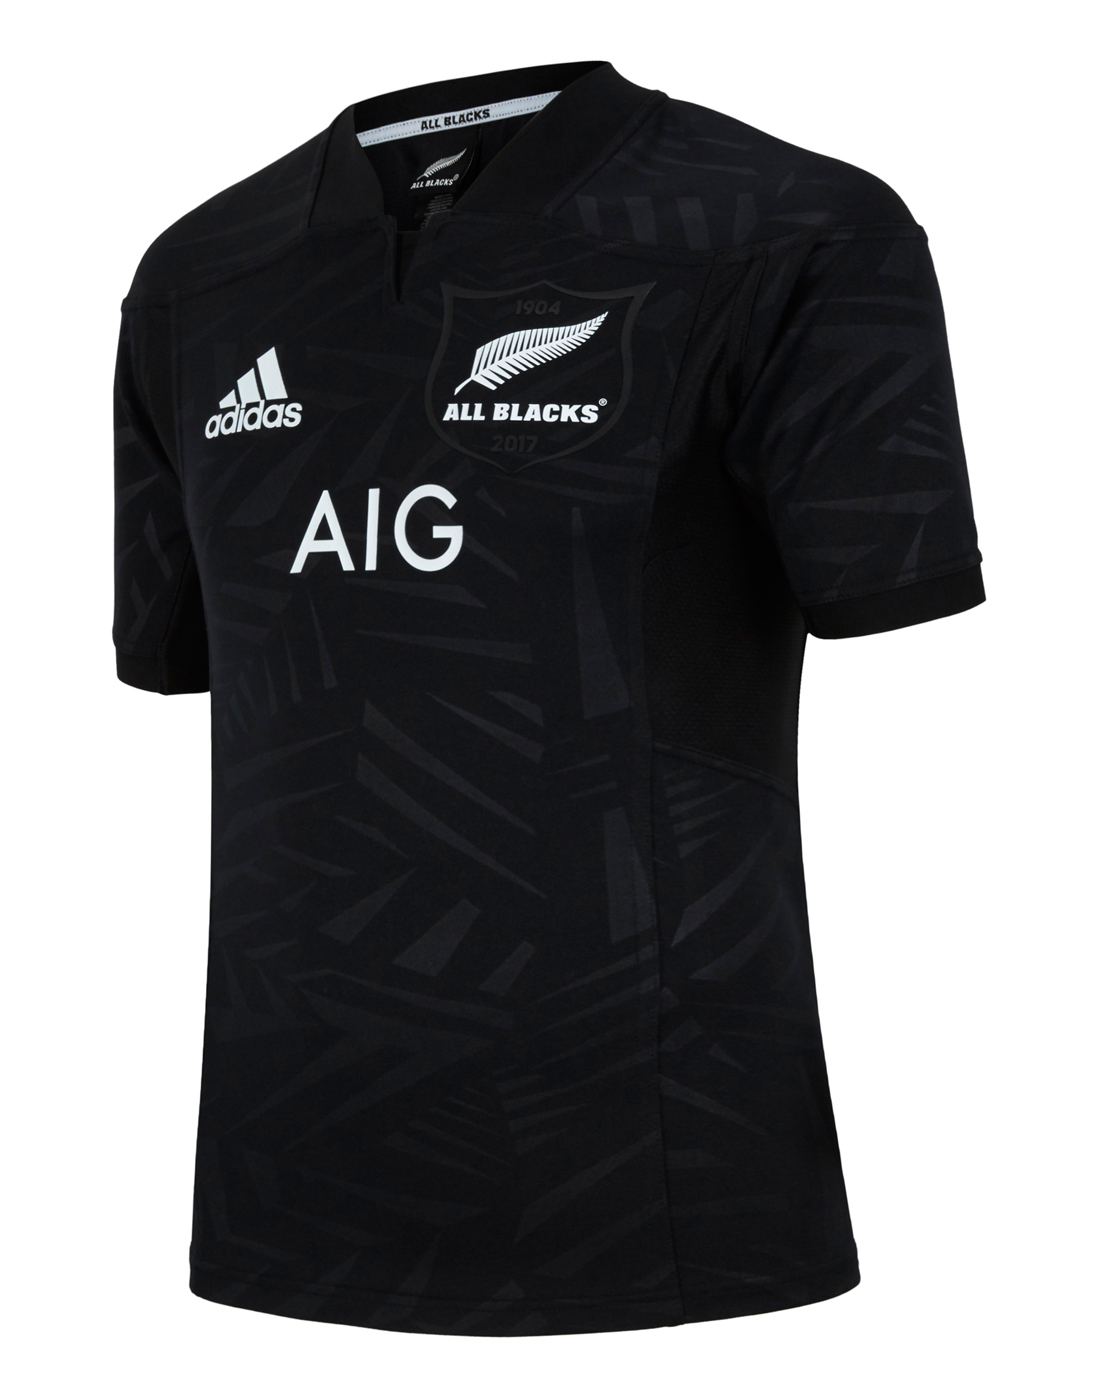 a15d9334c8b Mens All Blacks 2017 Territory Jersey · Mens All Blacks 2017 Territory  Jersey ...